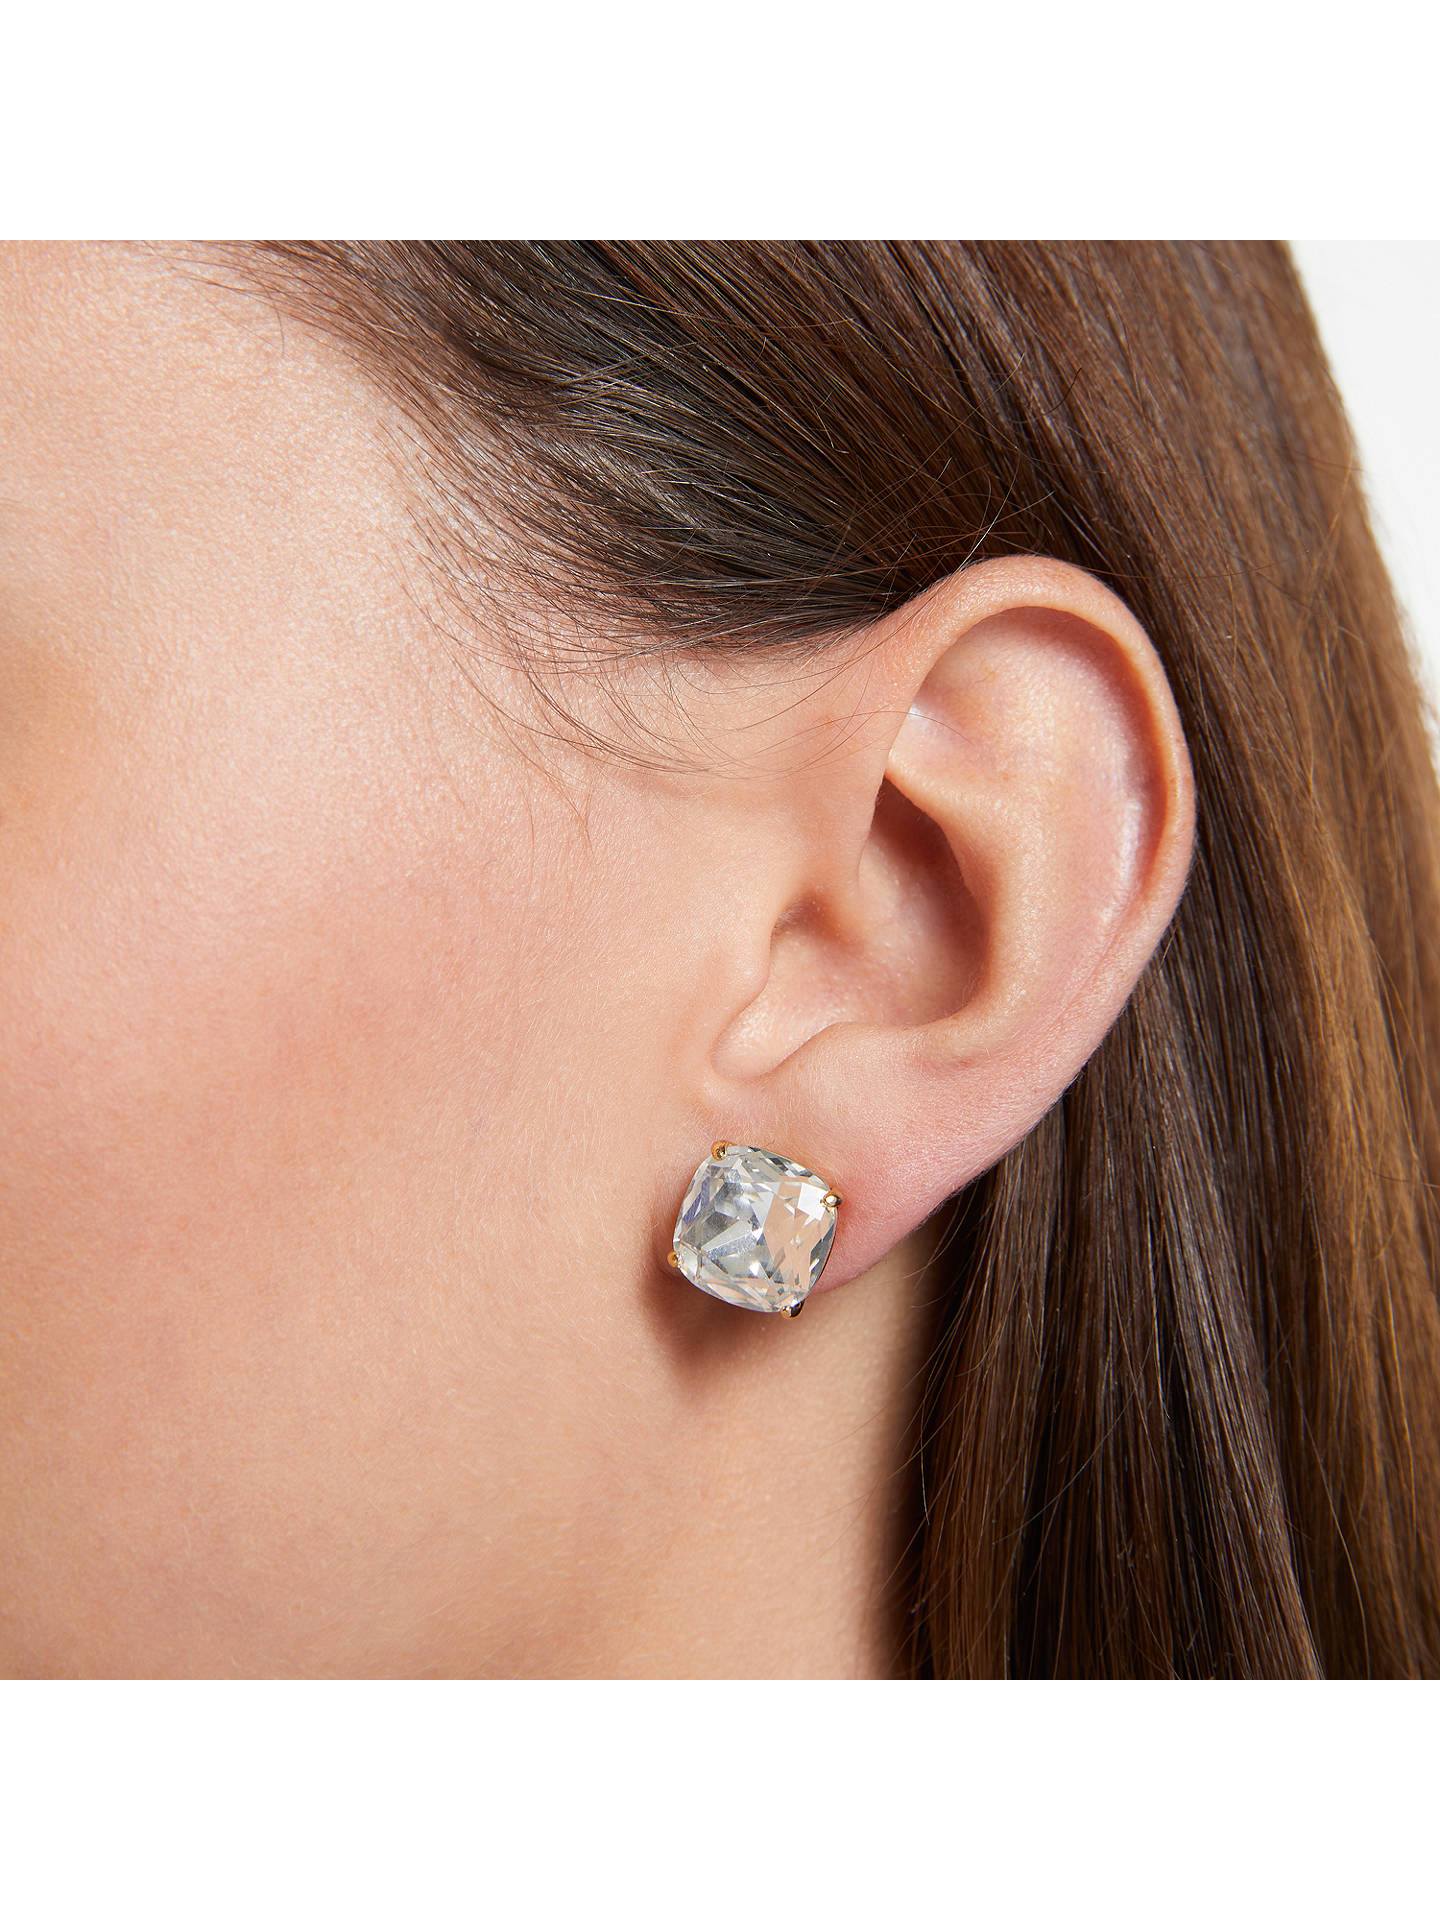 e47554f36eee98 ... Buy kate spade new york Small Square Stud Earrings, White Online at  johnlewis.com